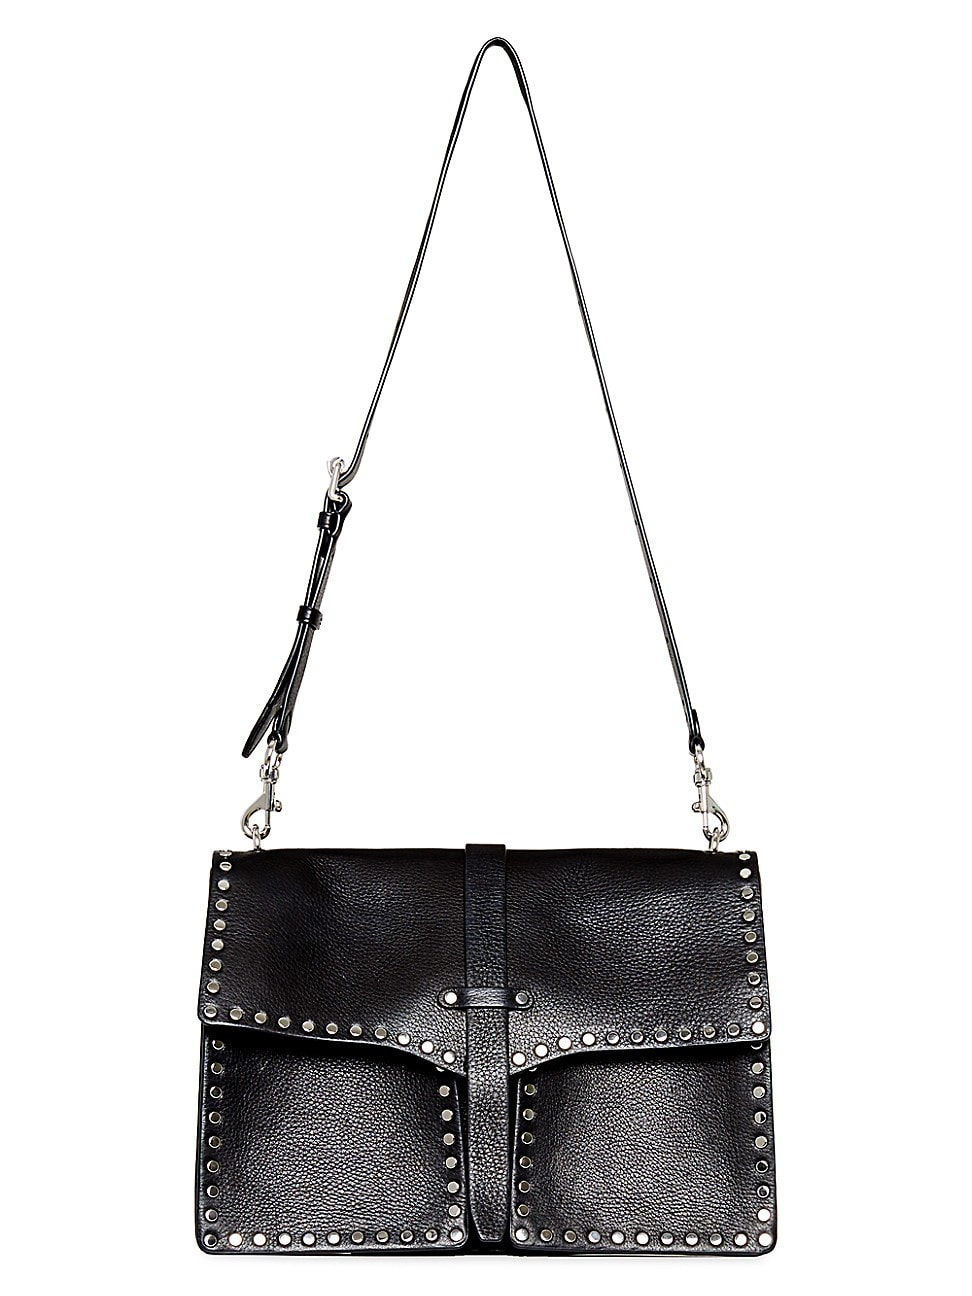 Rebecca Minkoff WOMEN'S NANINE STUDDED LEATHER SHOULDER BAG